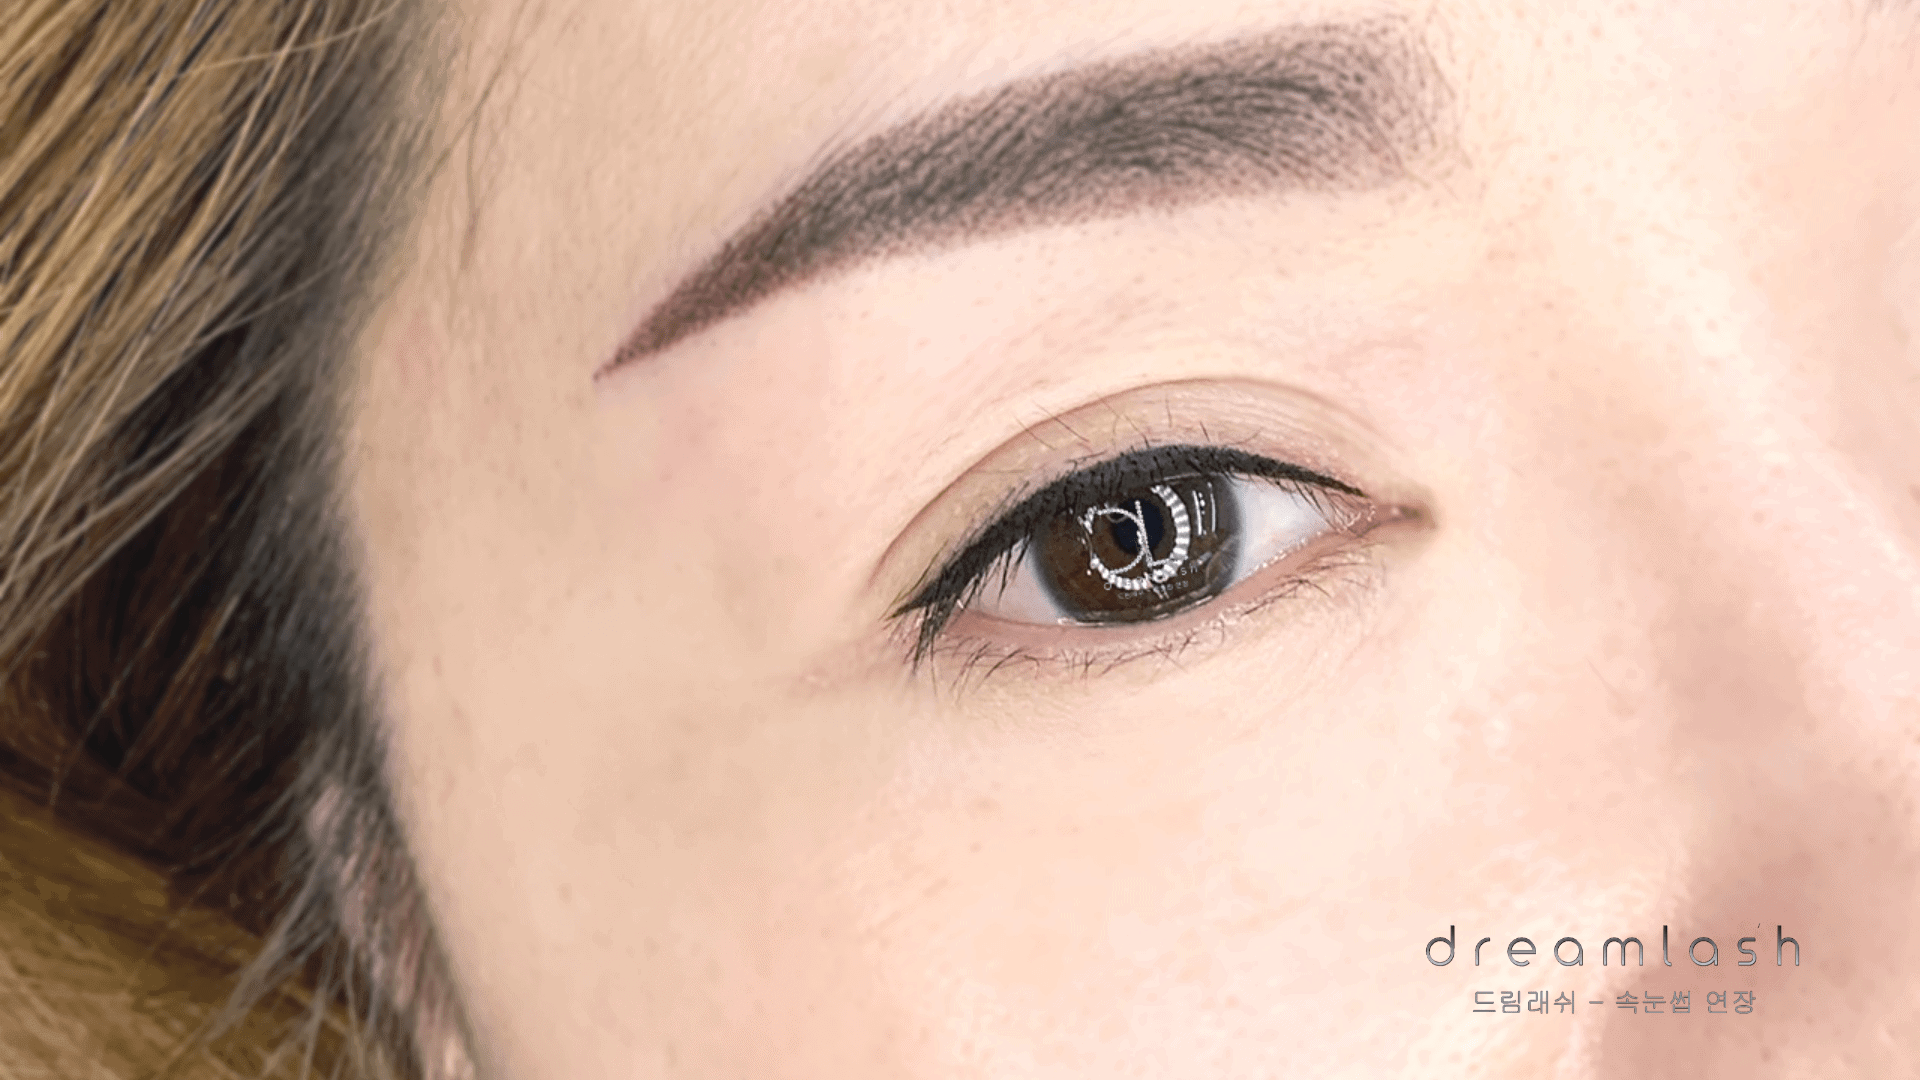 :Dreamlash Perfect Eyeliner Embroidery